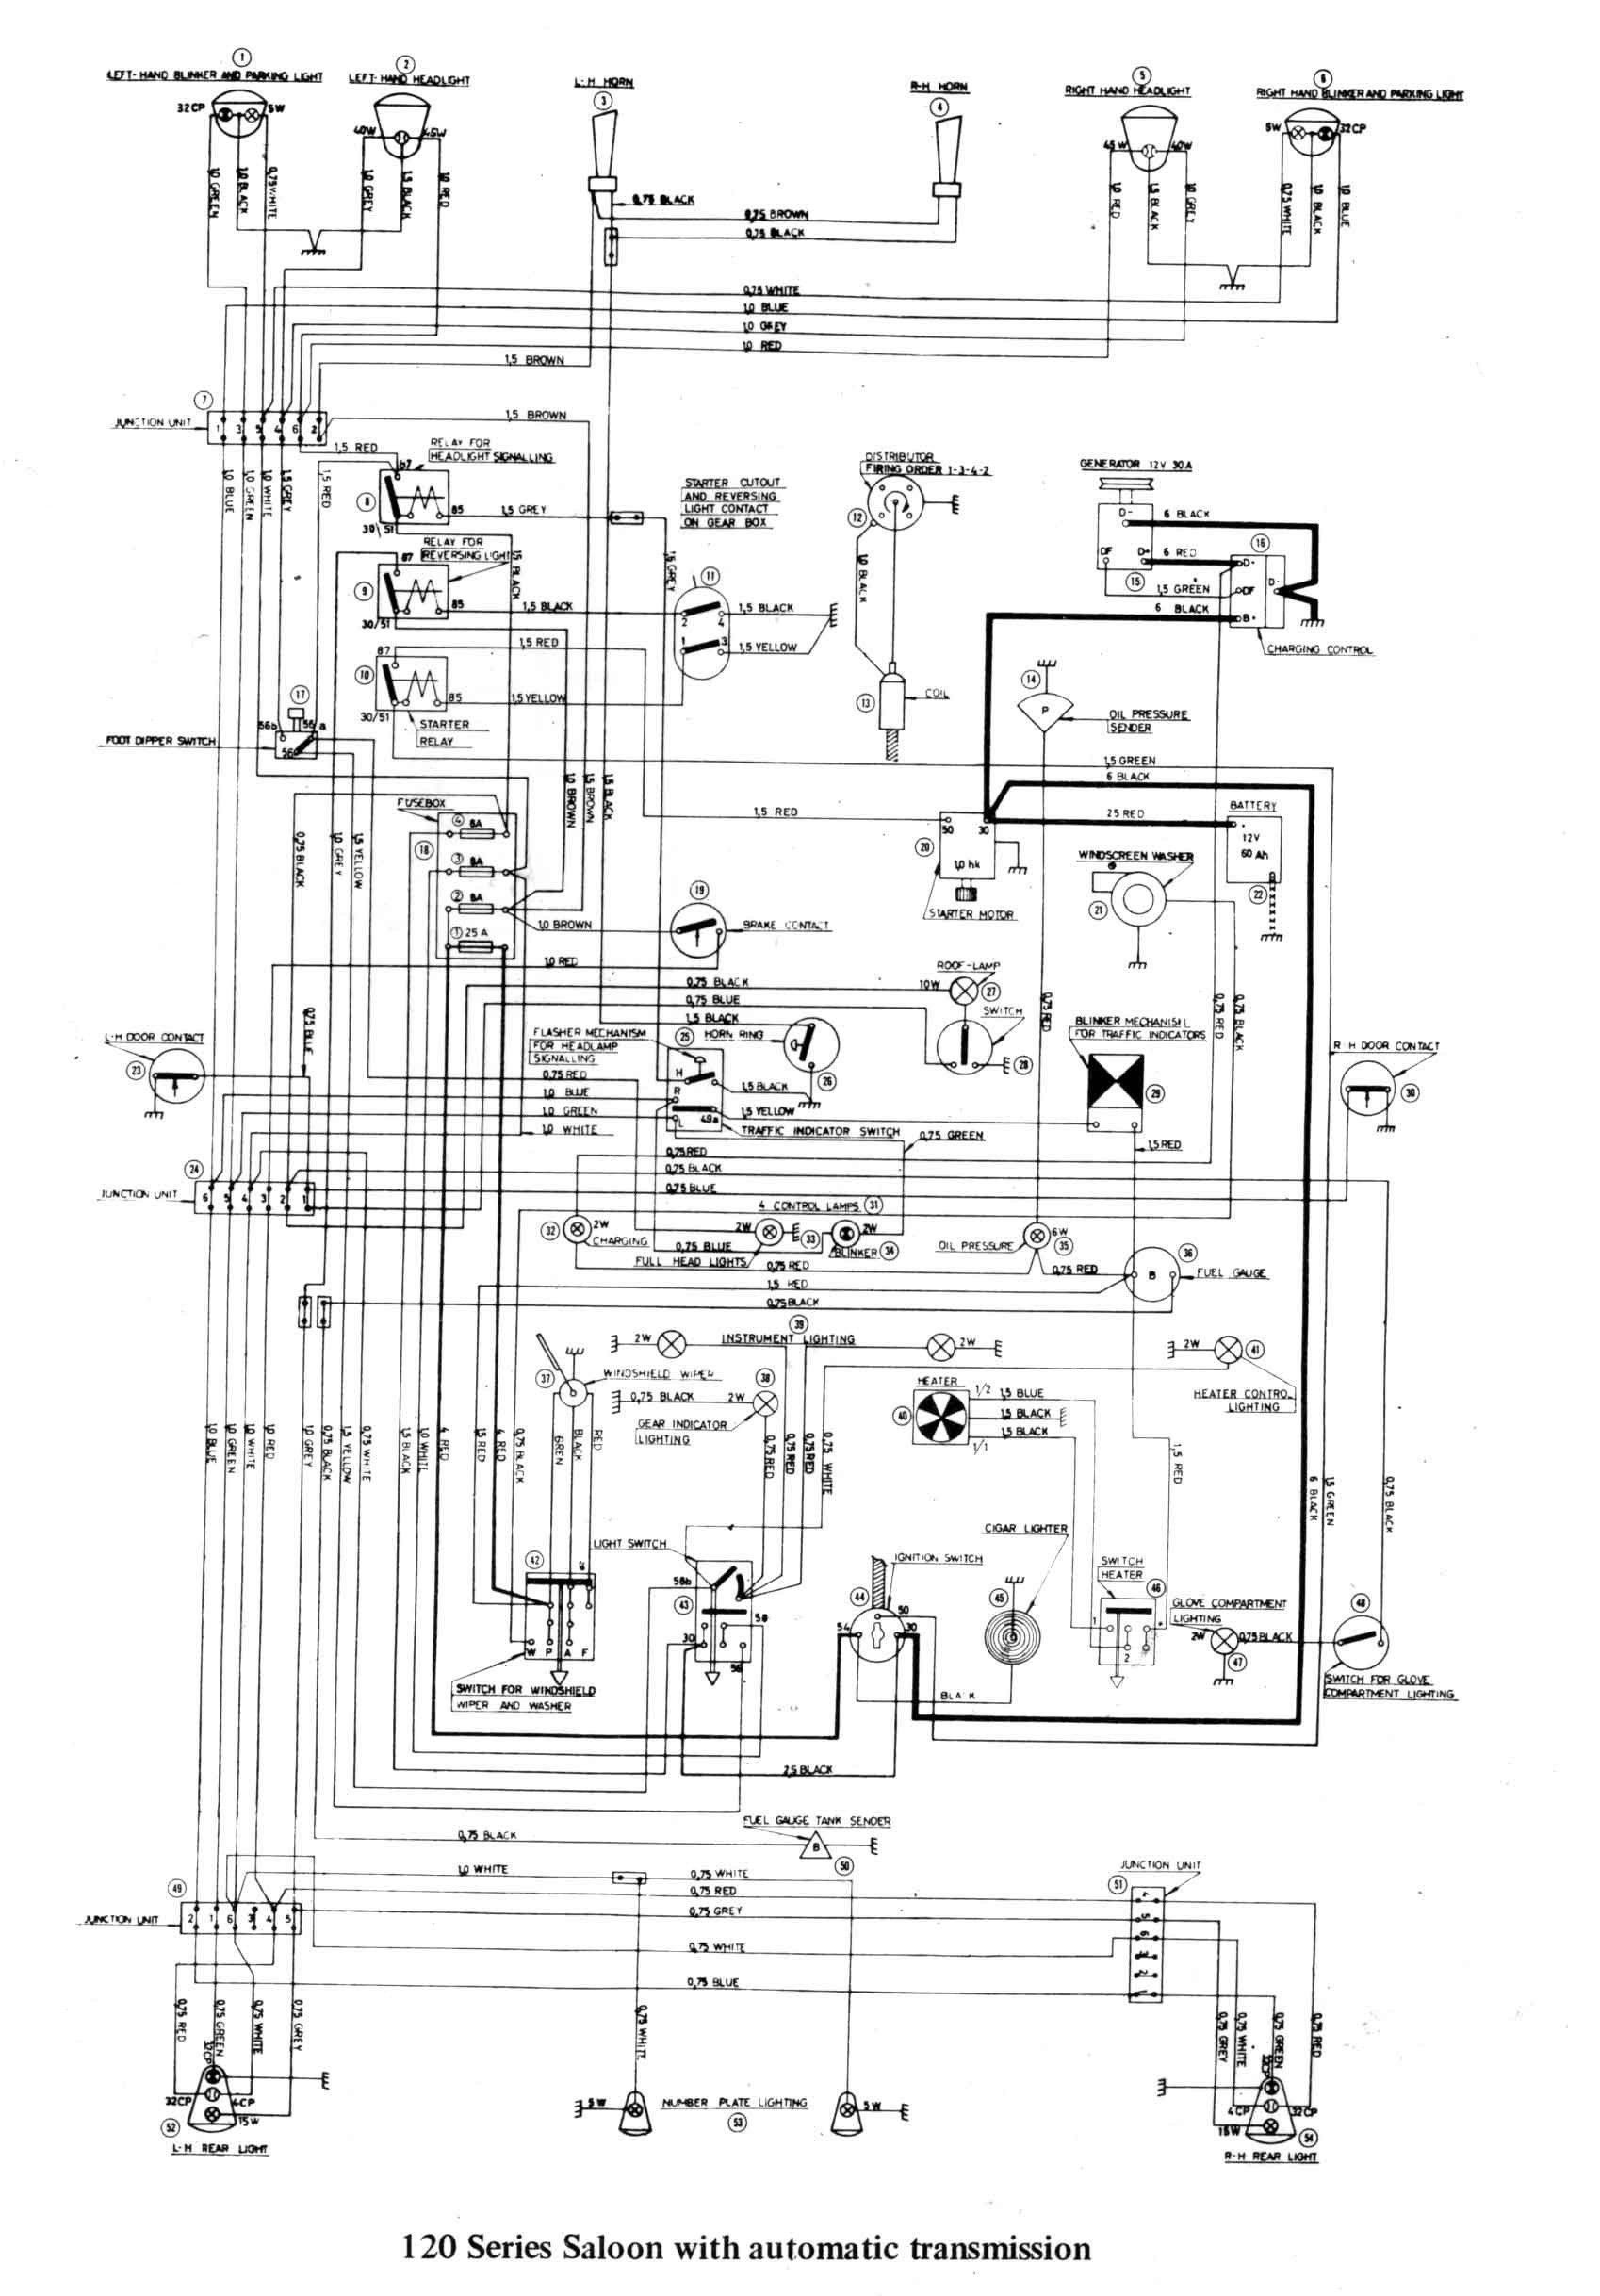 Volvo S80 Wiring Diagram | Wiring Diagram on 2001 audi tt wiring diagram, 2001 acura tl wiring diagram, 2005 chevrolet malibu wiring diagram, 2001 saturn l200 wiring diagram, 2006 volvo xc90 wiring diagram, 1995 volvo 960 wiring diagram, 2001 honda s2000 wiring diagram, 2003 volvo xc90 wiring diagram, 2001 pontiac aztek wiring diagram, 2001 buick park avenue wiring diagram, 2001 pontiac grand am wiring diagram, 2001 toyota avalon wiring diagram, 2006 chrysler pt cruiser wiring diagram, 2001 mitsubishi eclipse spyder wiring diagram, 2001 honda prelude wiring diagram, 2004 volvo xc90 wiring diagram, 2001 saab 9-5 wiring diagram, 2001 lexus gs300 wiring diagram, 2001 mercedes s500 wiring diagram, 2005 volvo xc90 wiring diagram,